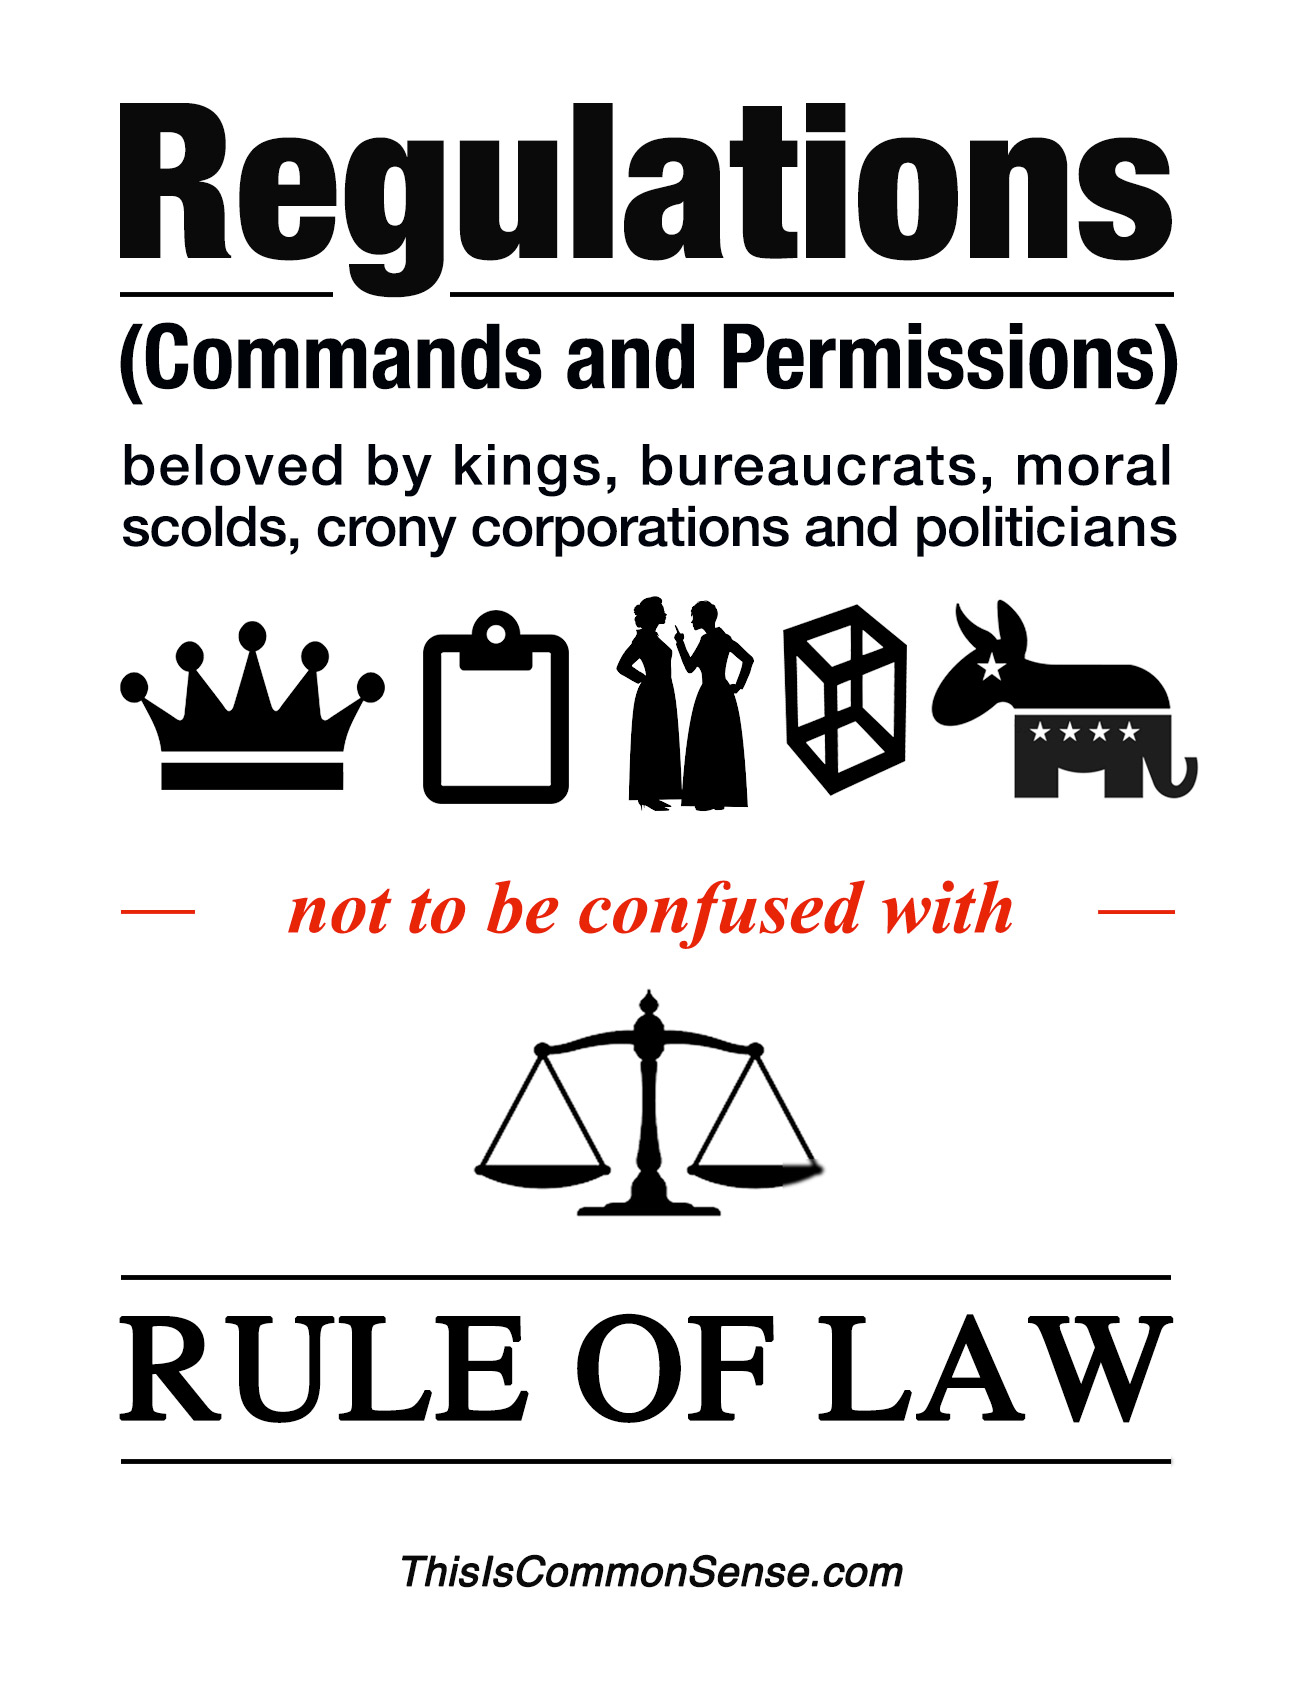 regulations, rule of law, control, freedom